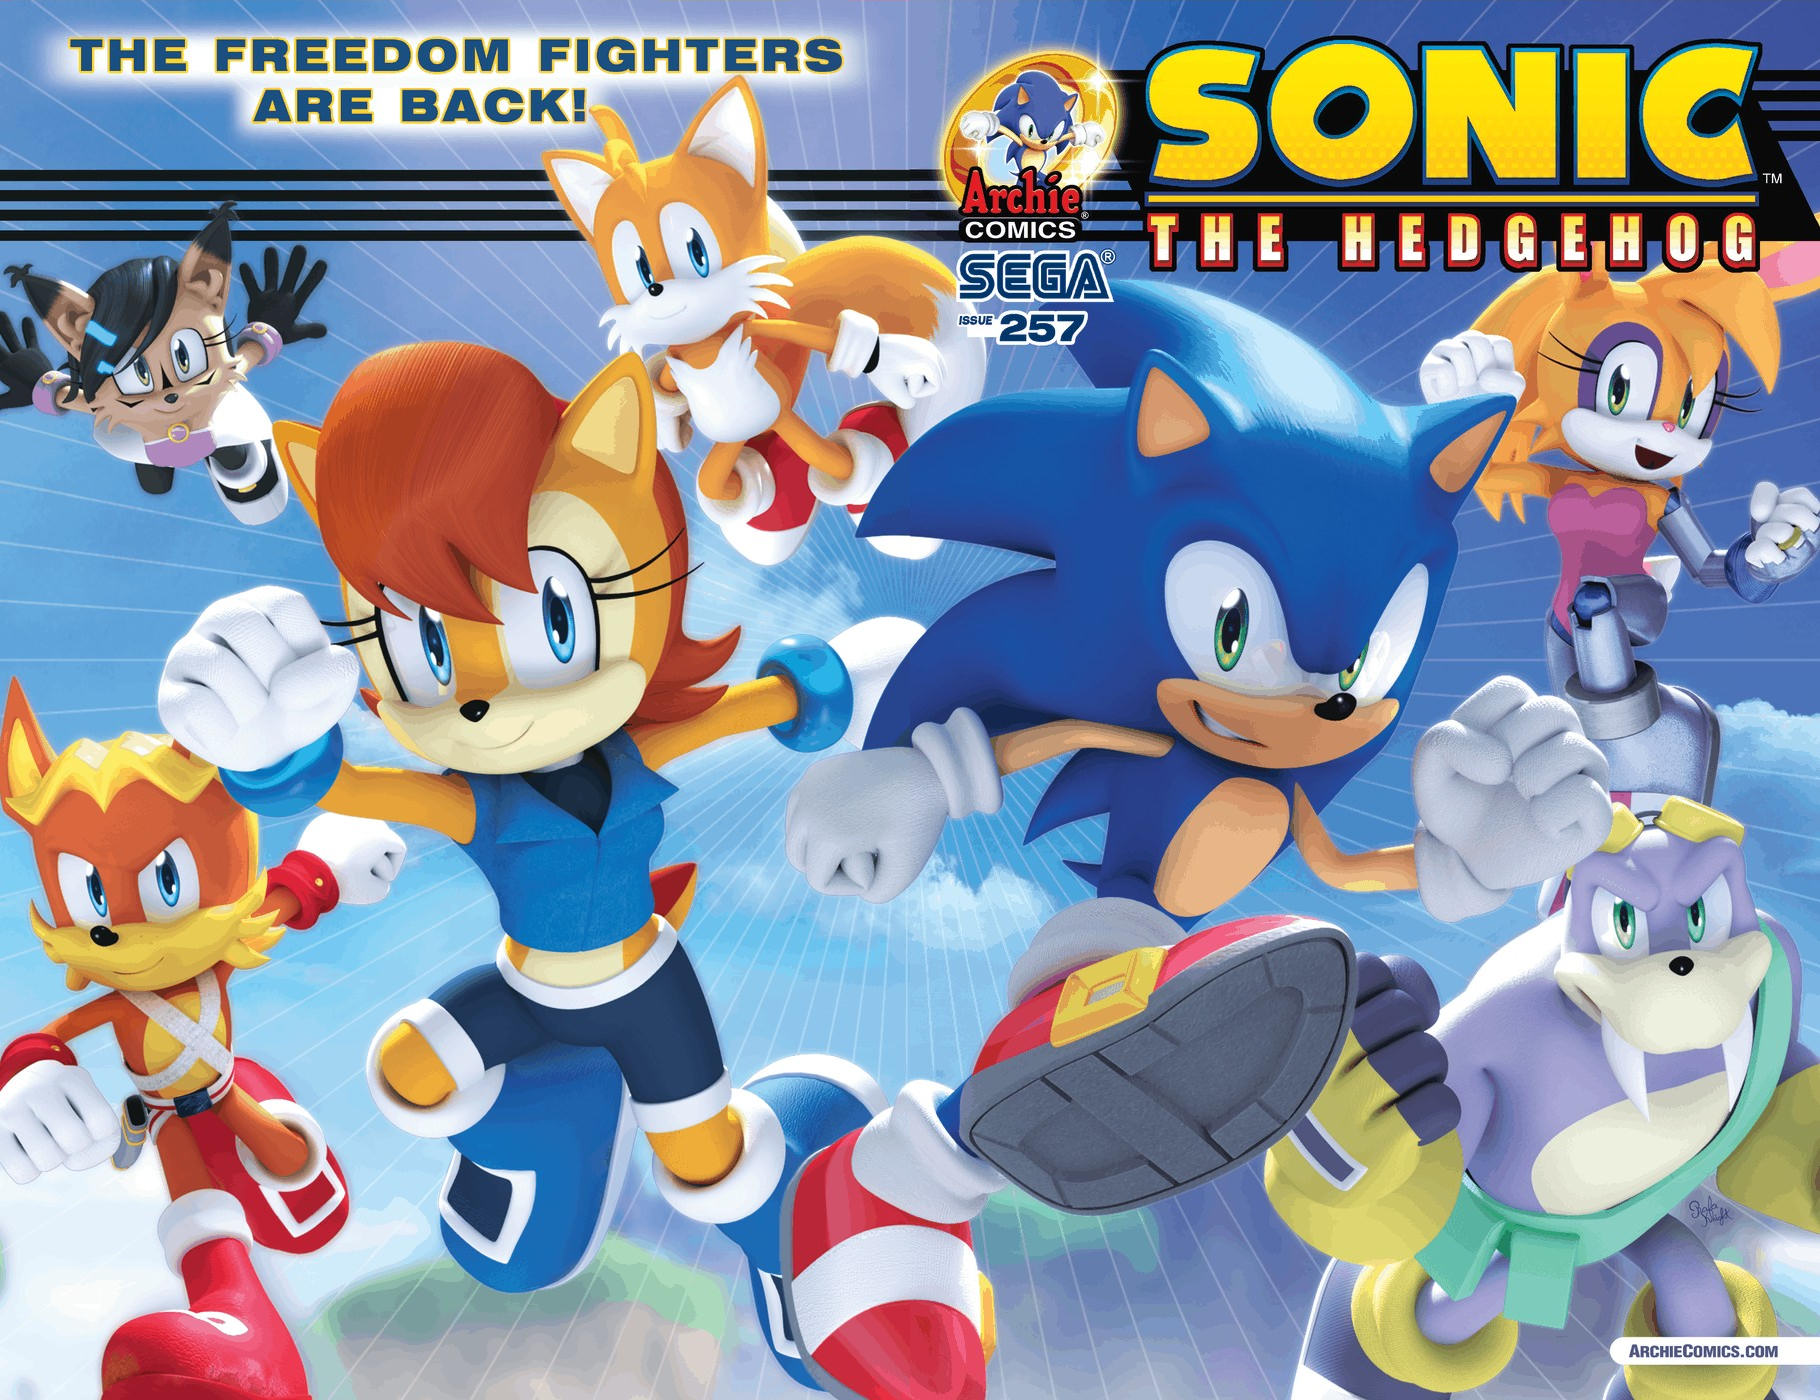 Archie Sonic the Hedgehog Issue 257